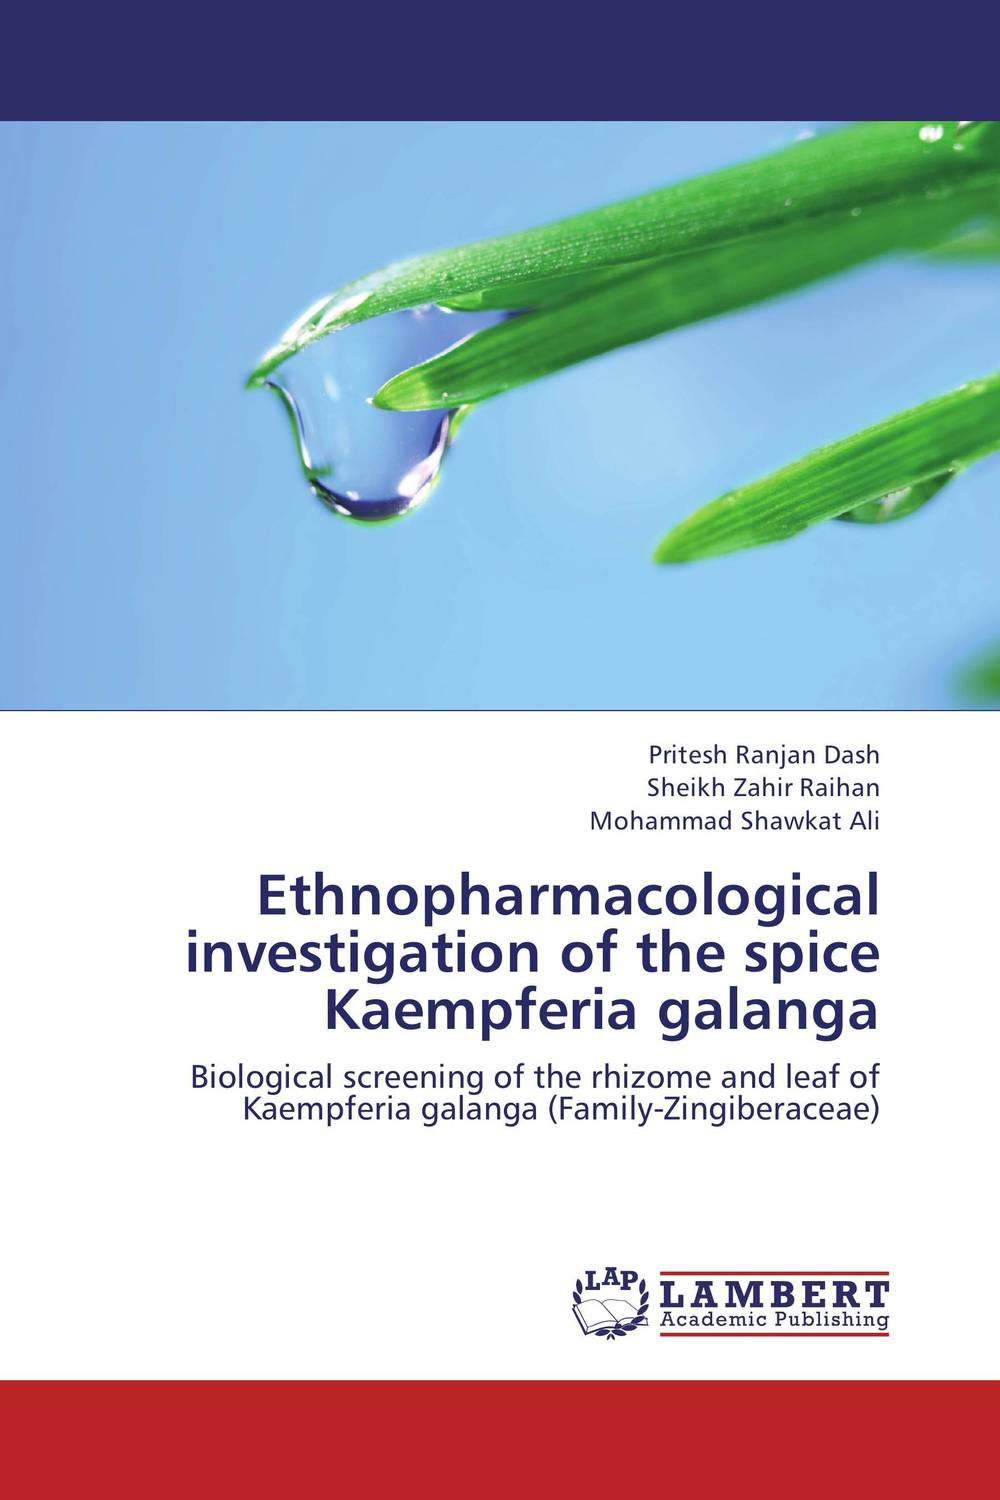 Ethnopharmacological investigation of the spice Kaempferia galanga ethnopharmacological investigation of the spice kaempferia galanga